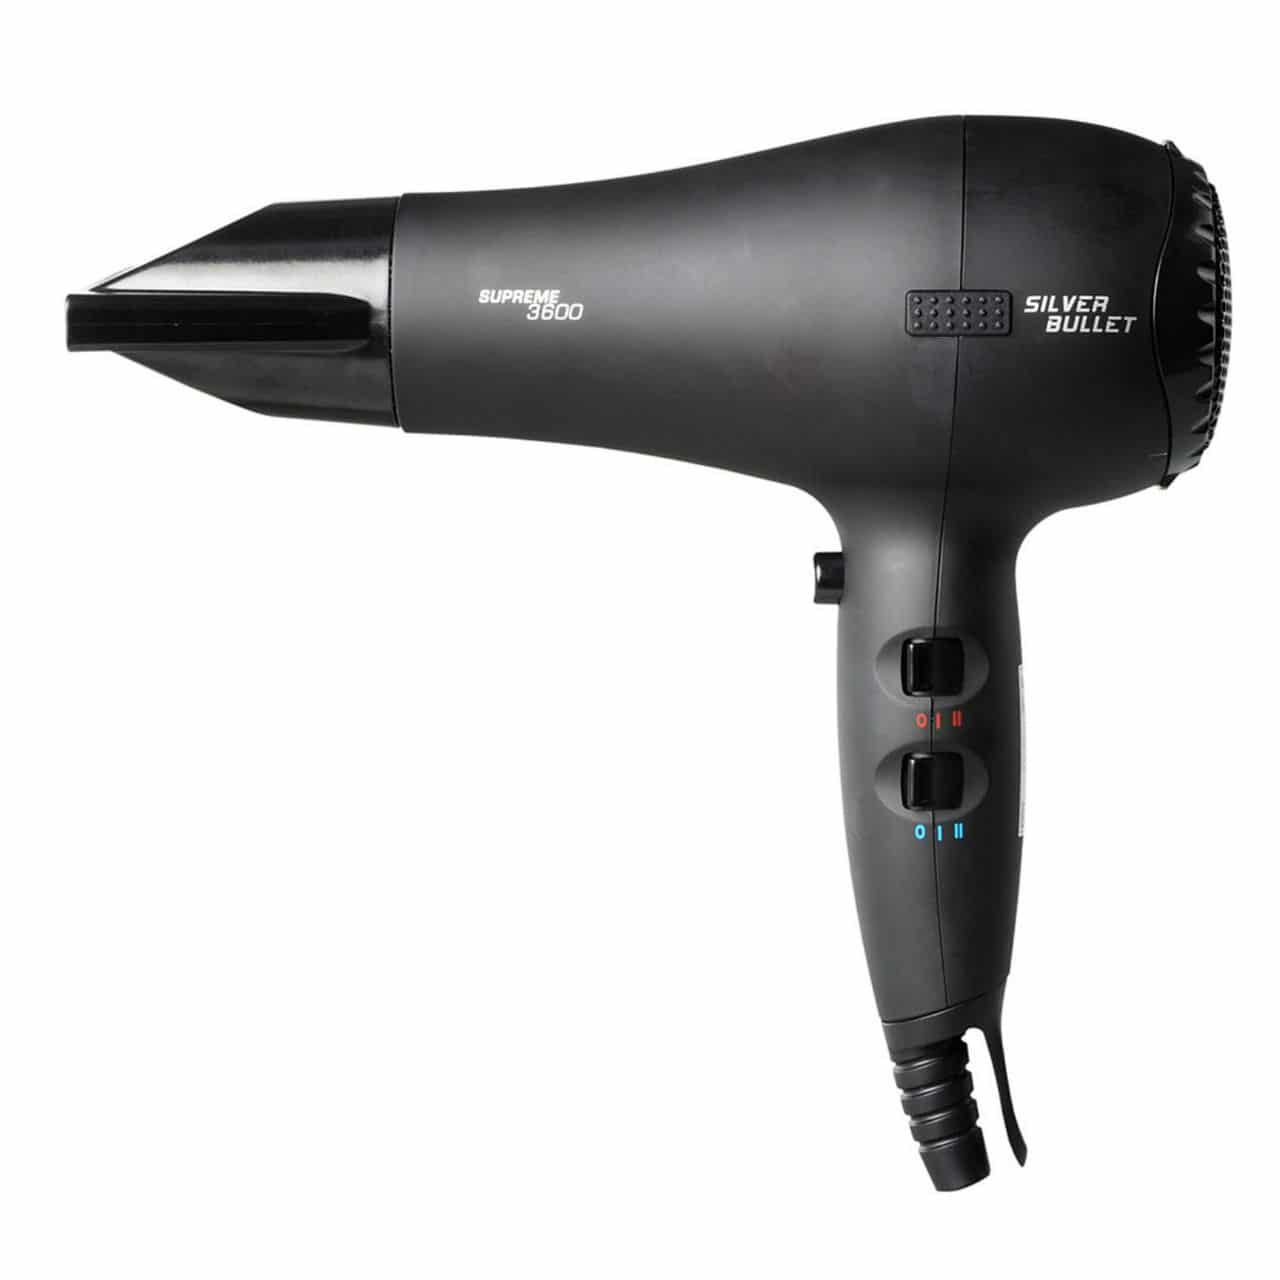 Silver Bullet Supreme 3600 Hair Dryer Black